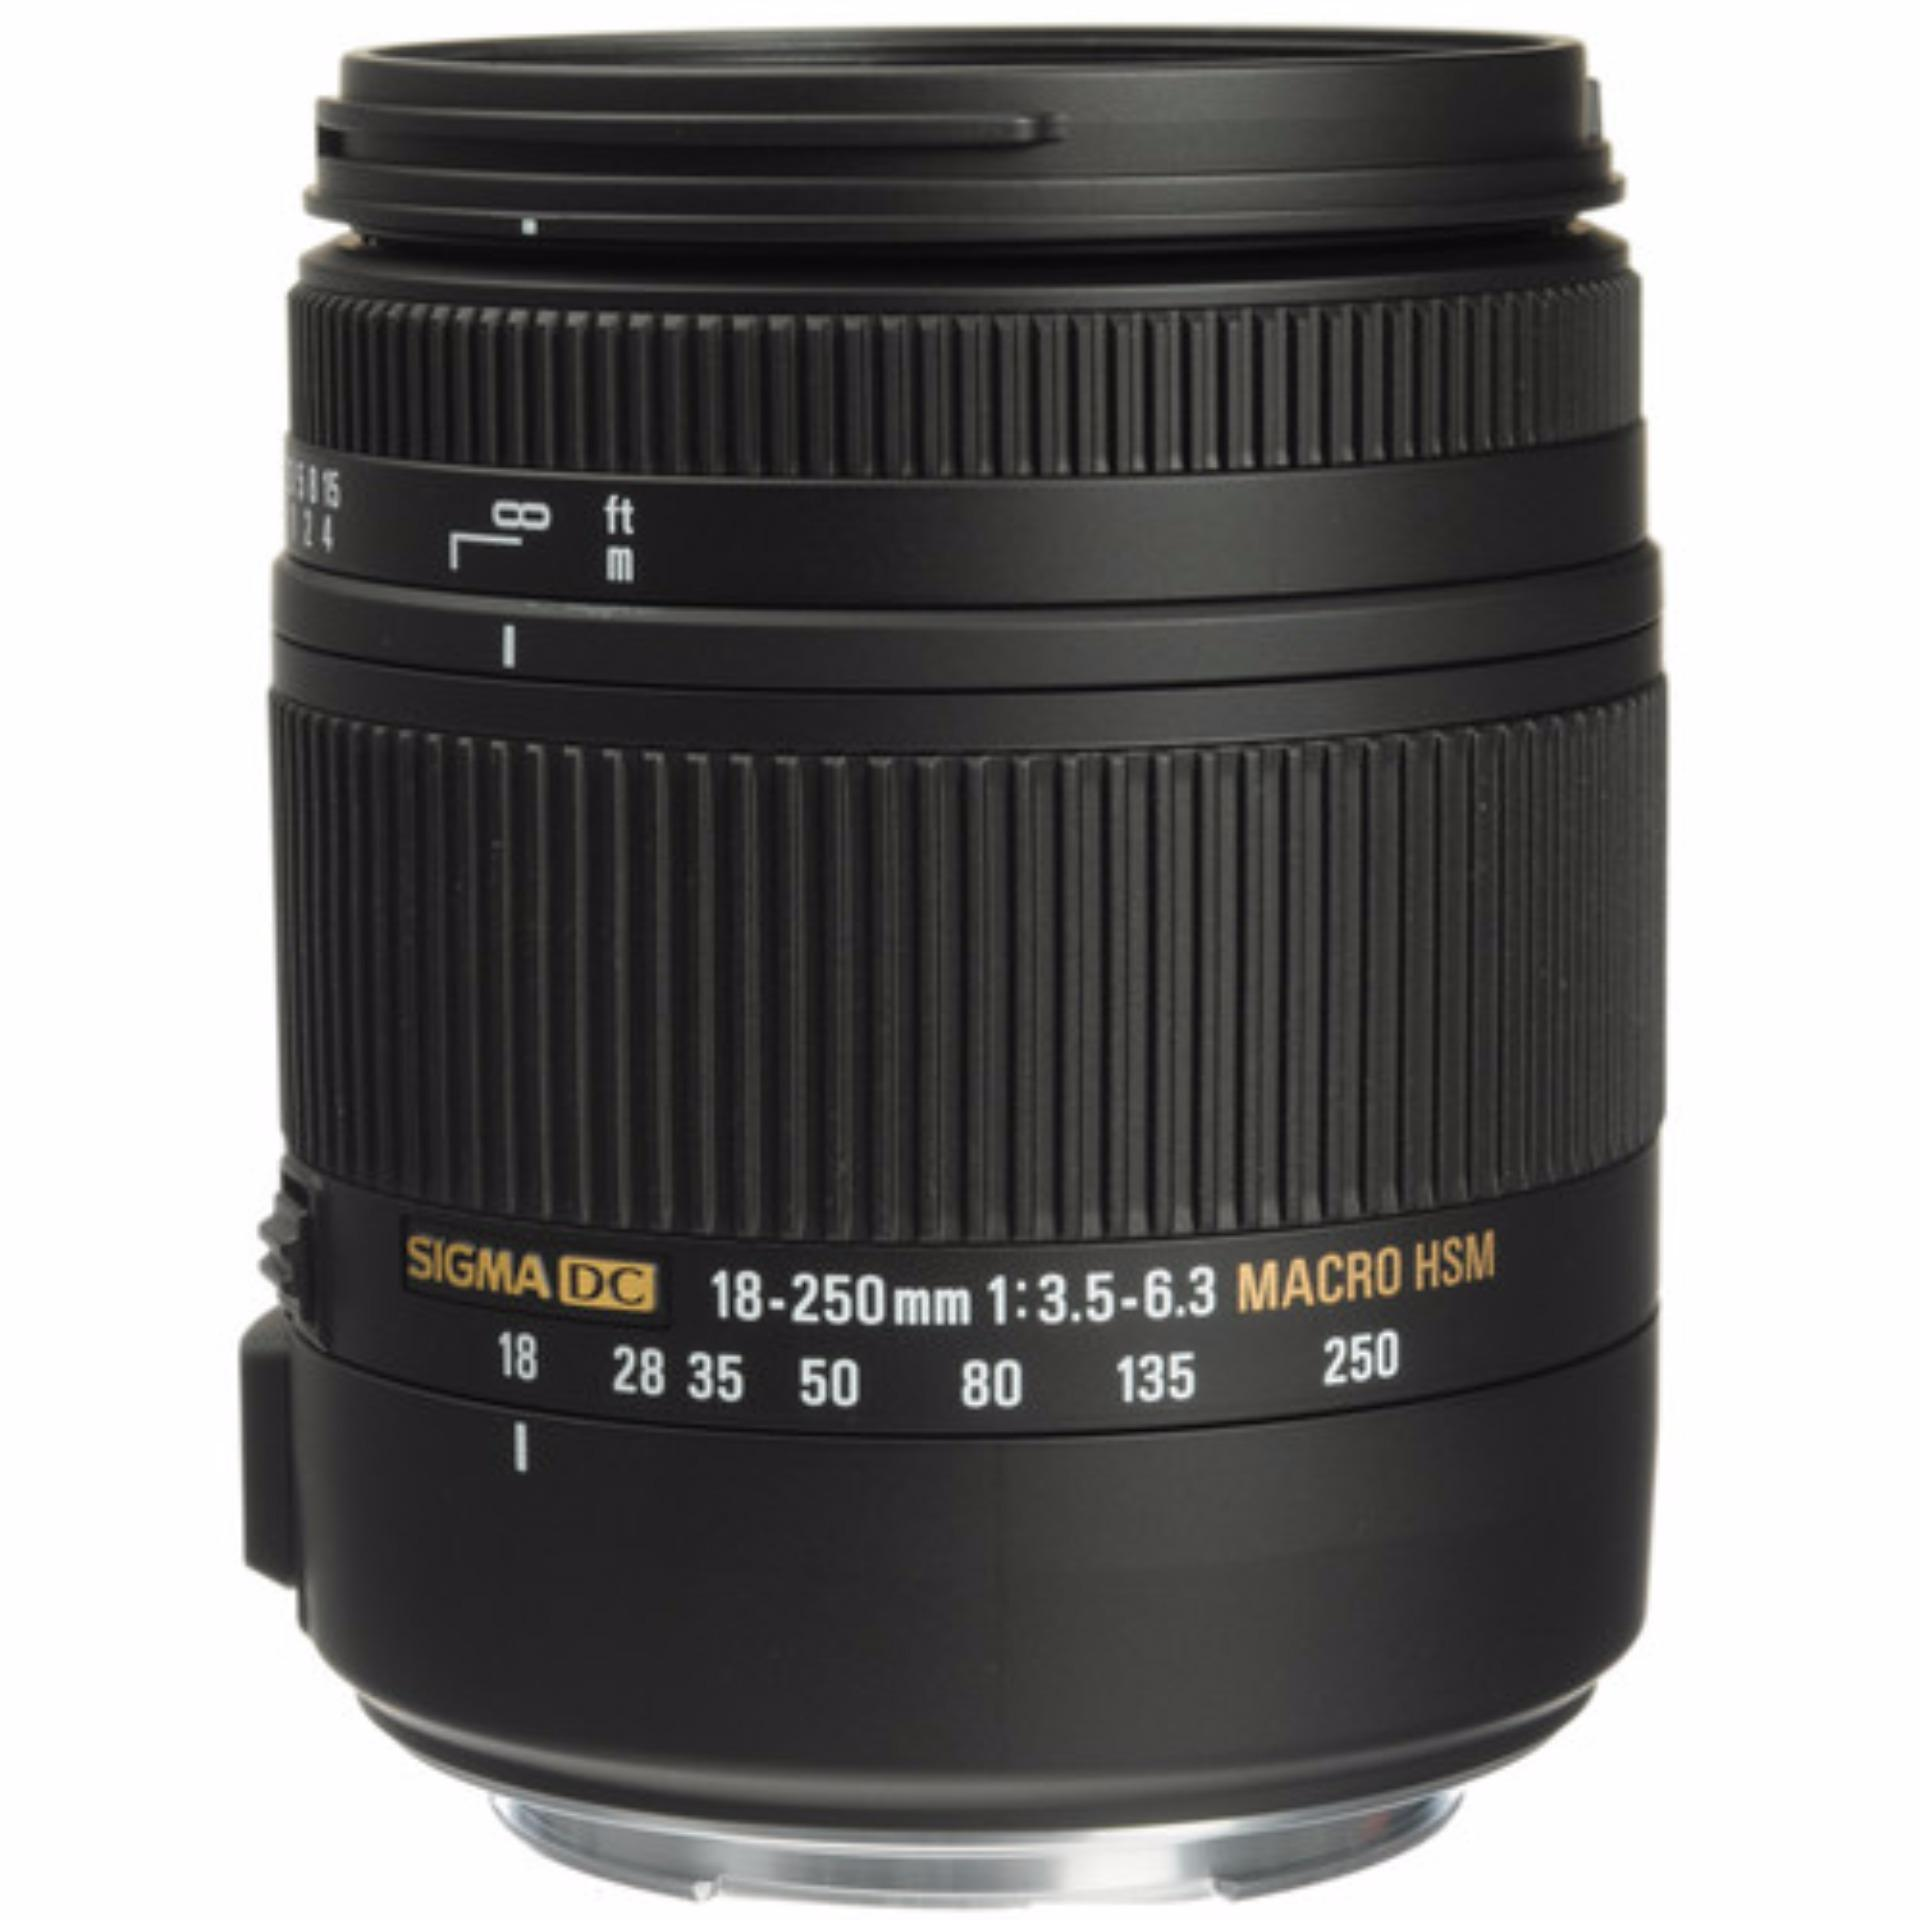 Sigma 18-250mm F3.5-6.3 DC MACRO OS HSM For Canon